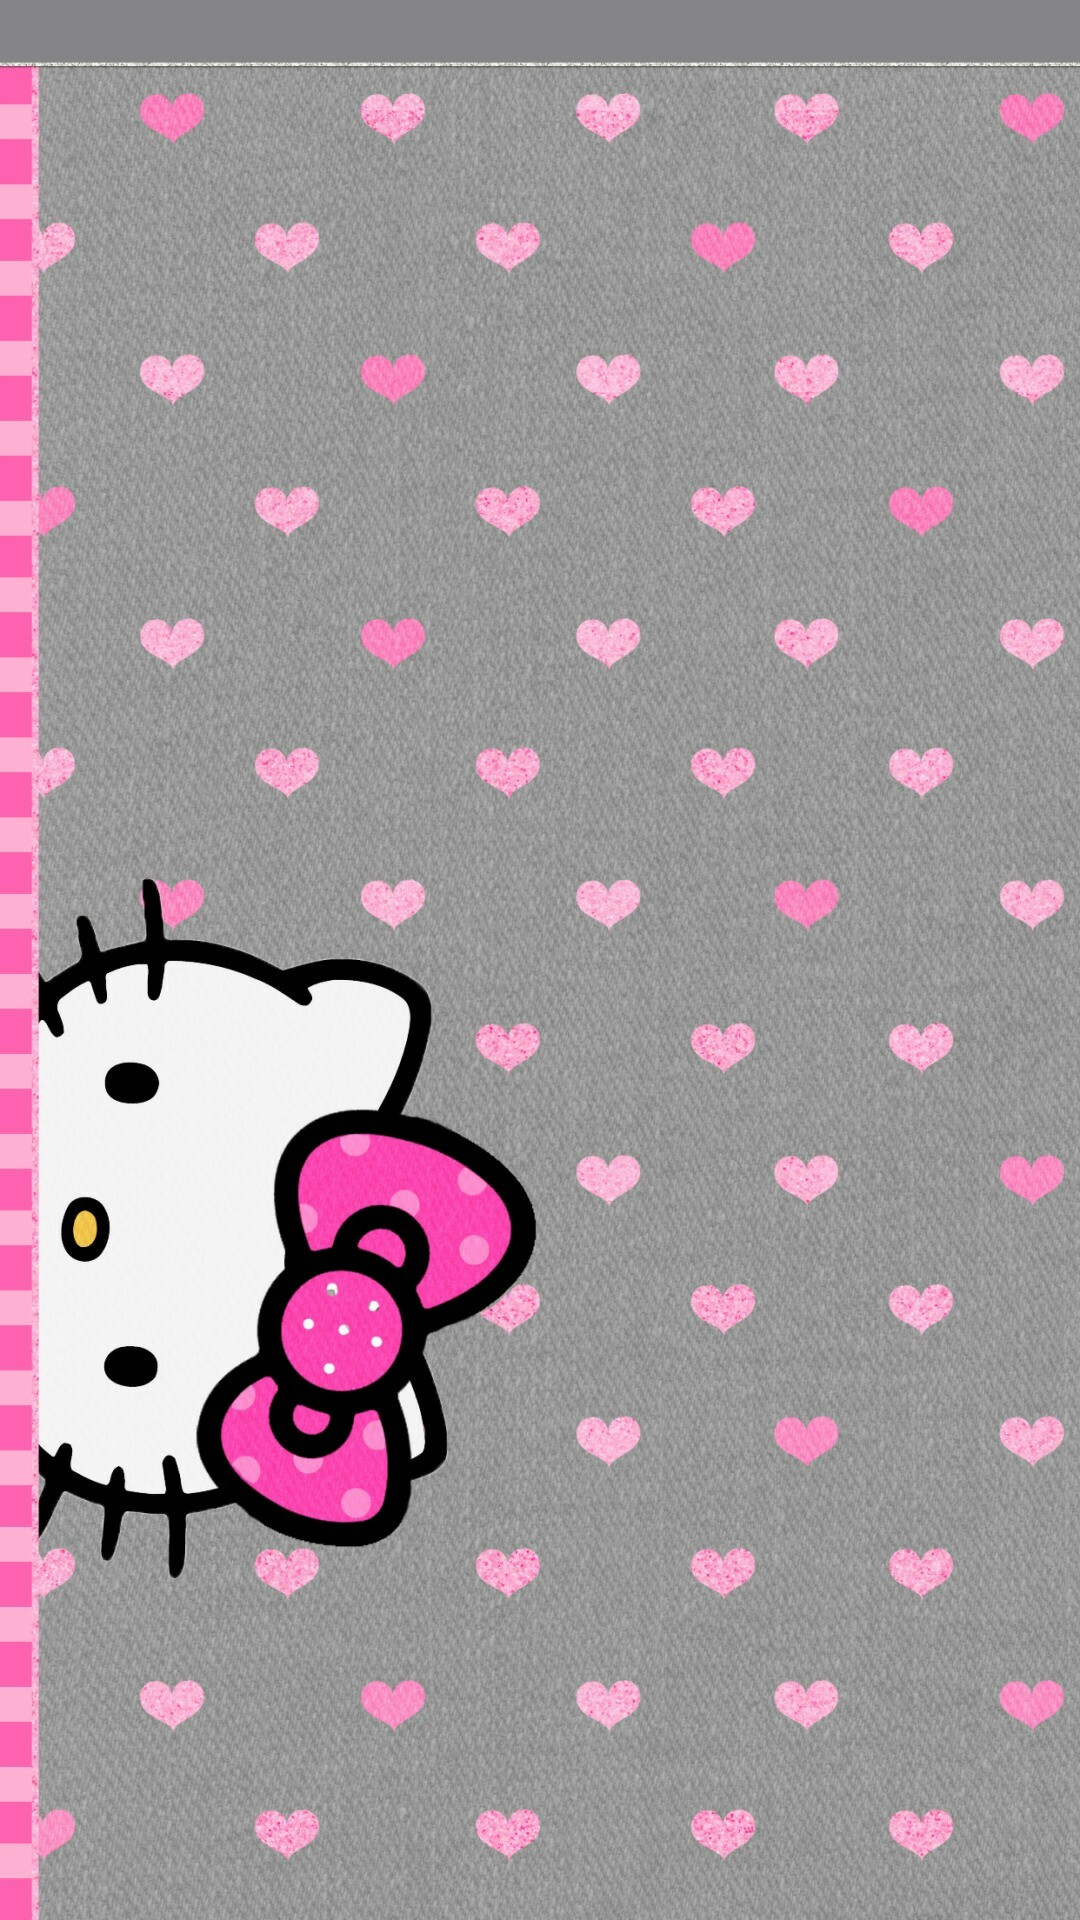 Cool Wallpaper Hello Kitty Floral - 1006062-download-hello-kitty-wallpapers-and-screensavers-1080x1920-for-ipad  Trends_809689.jpg